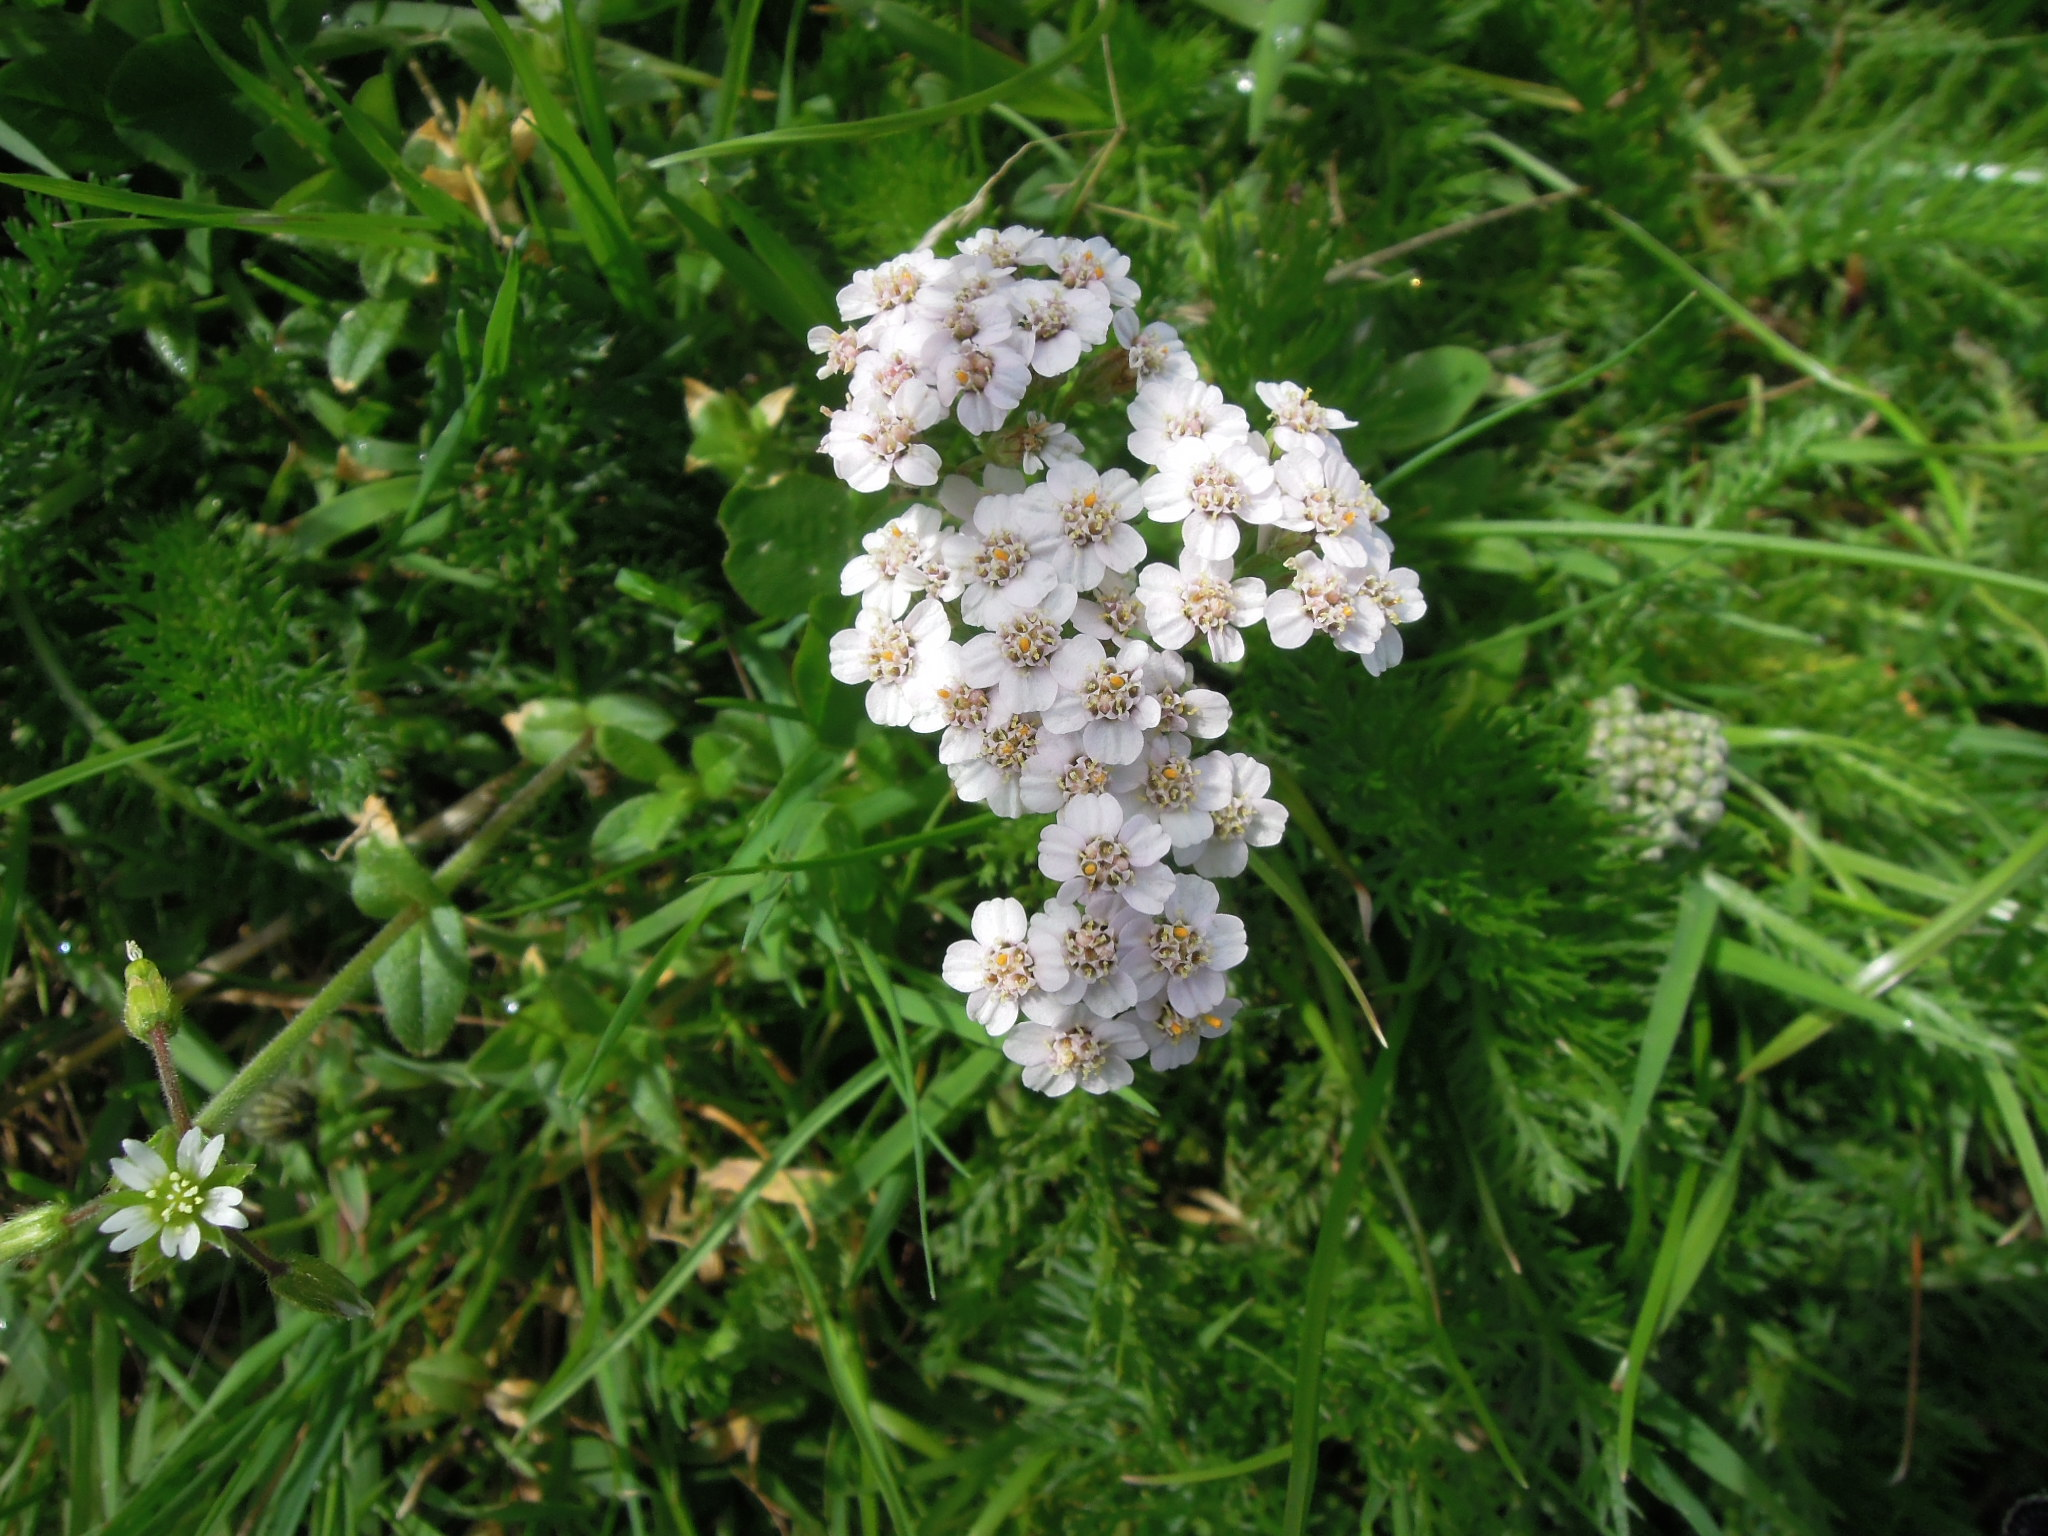 Highlands a day of lochs satsumabug tiny white flowers in a cluster maybe yarrow dhlflorist Image collections